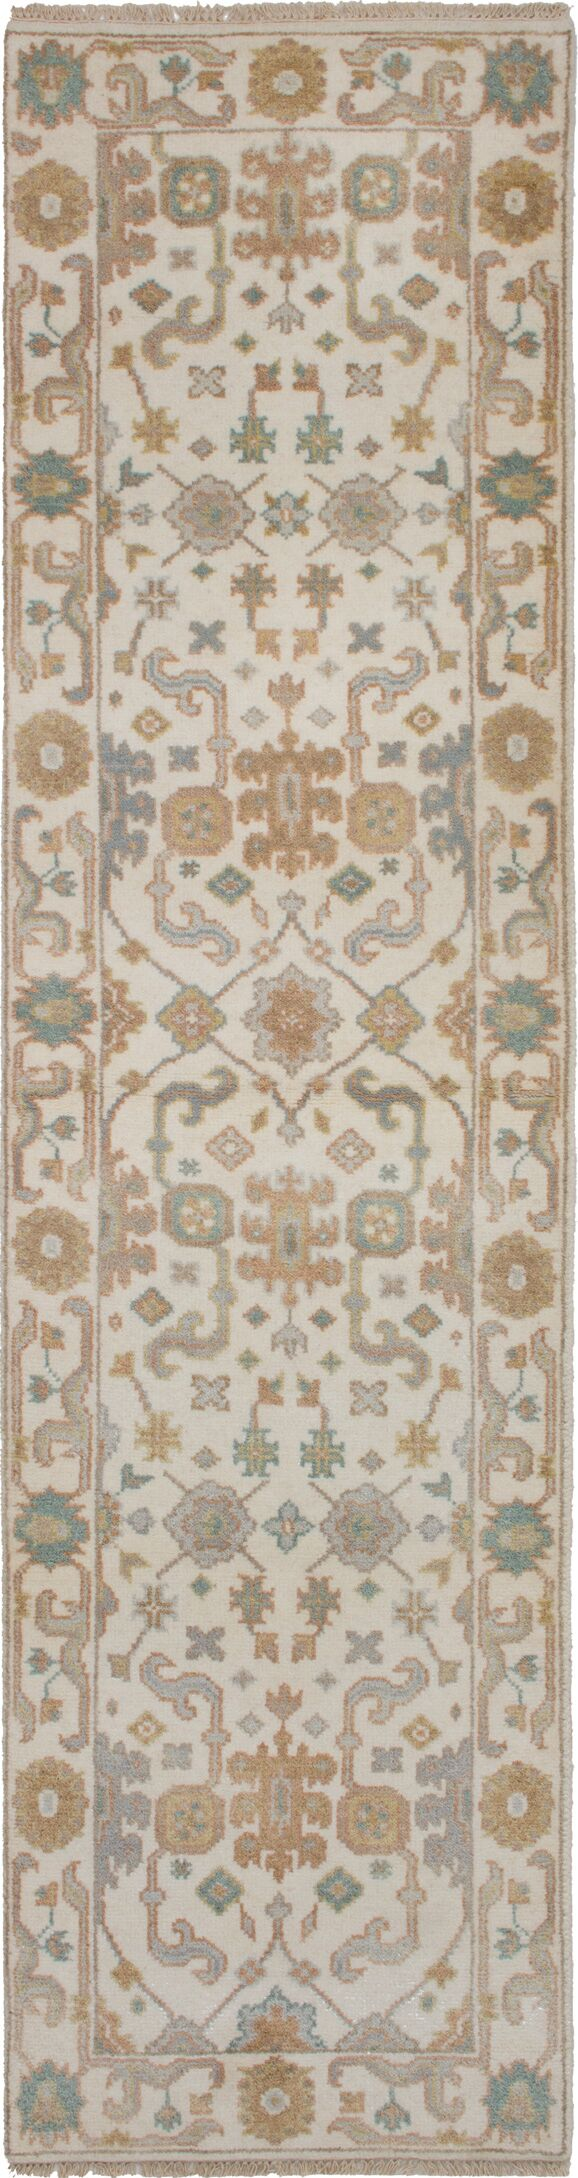 One-of-a-Kind Doggett Hand-Knotted Wool Cream Area Rug